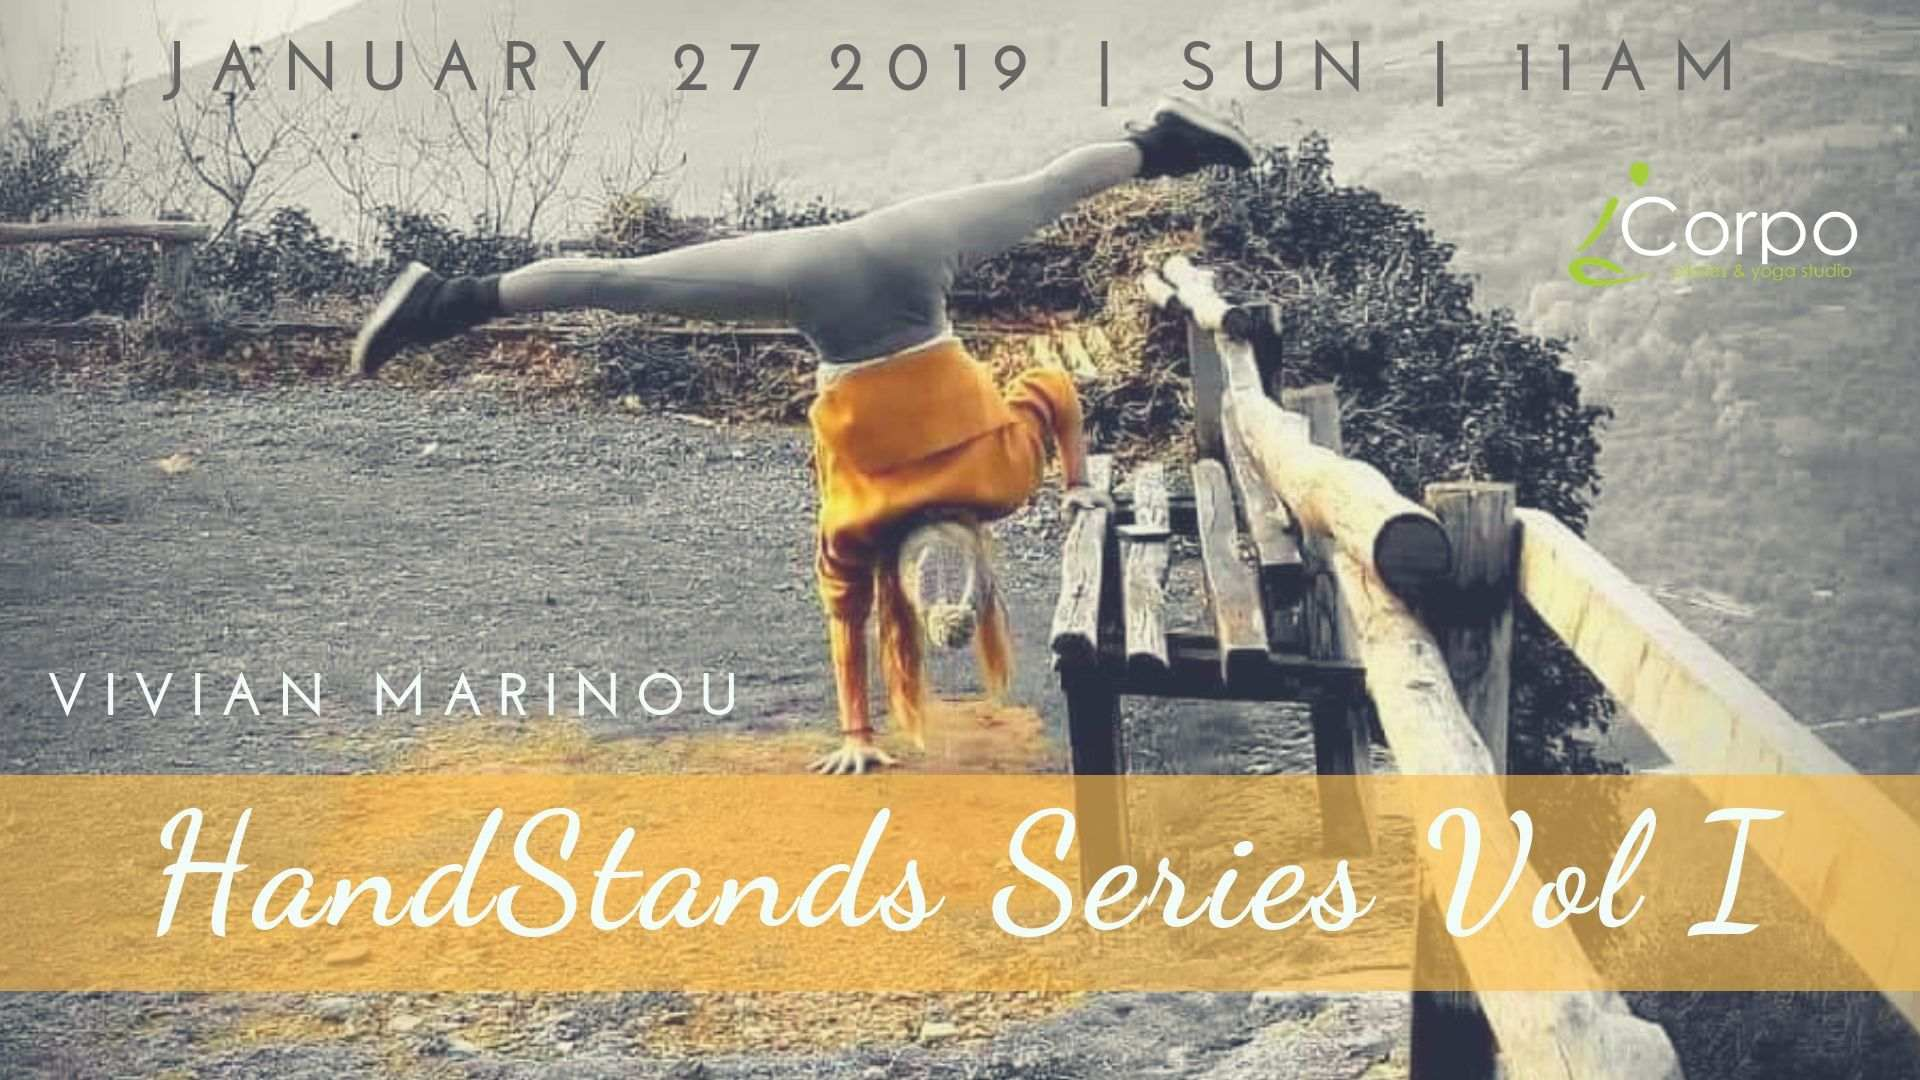 Handstands Series Vol I by Vivian Marinou 27th of January